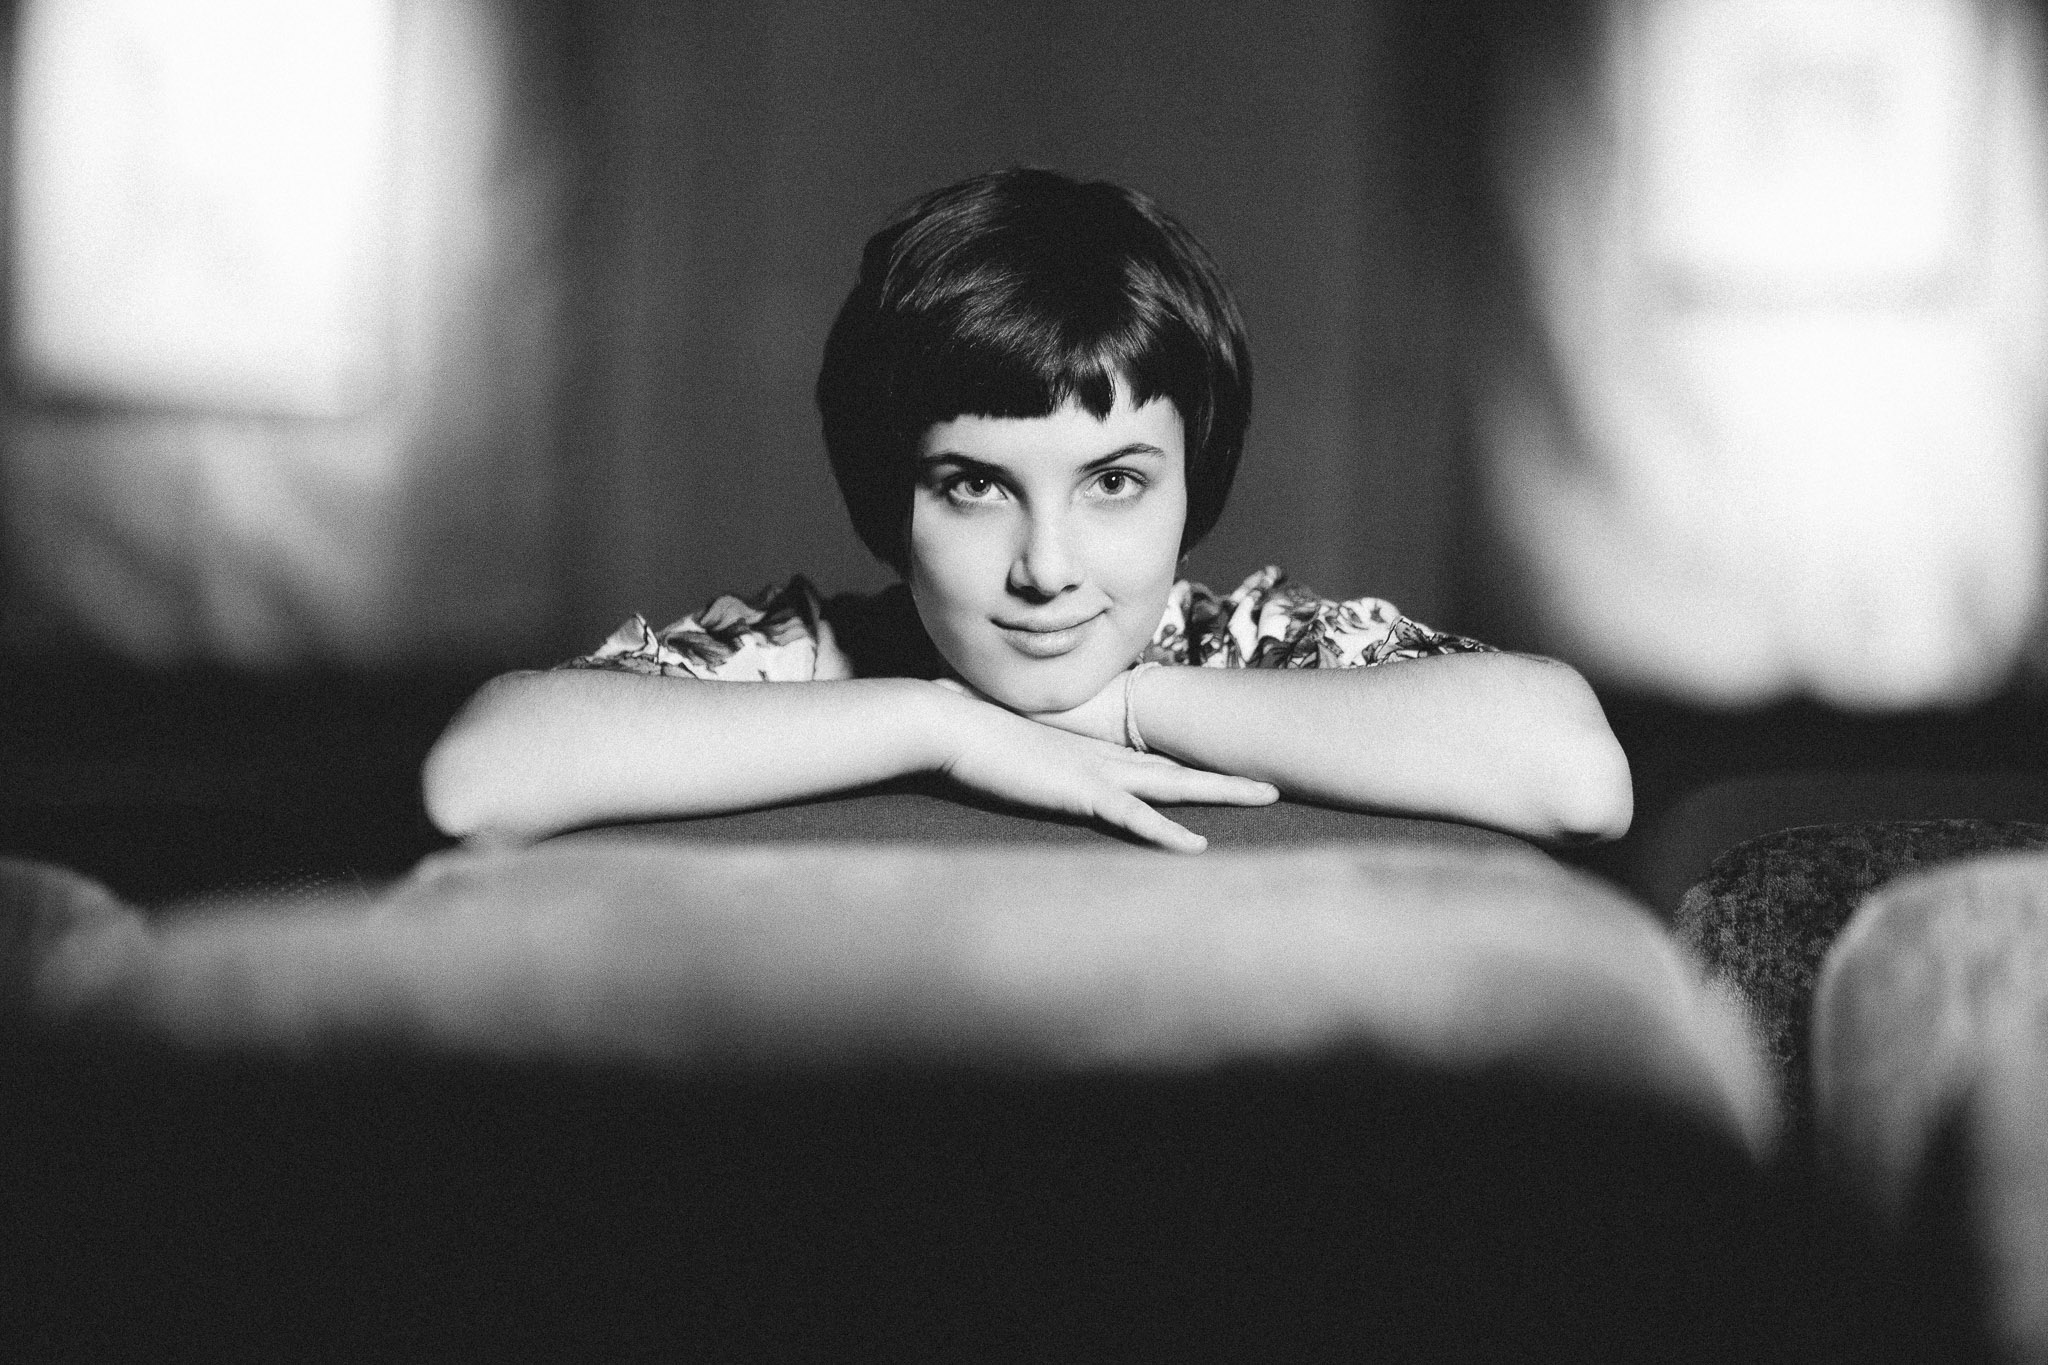 Black white portrait young lady smiling in old theater short hair dramatic lighting nh commercial photographers